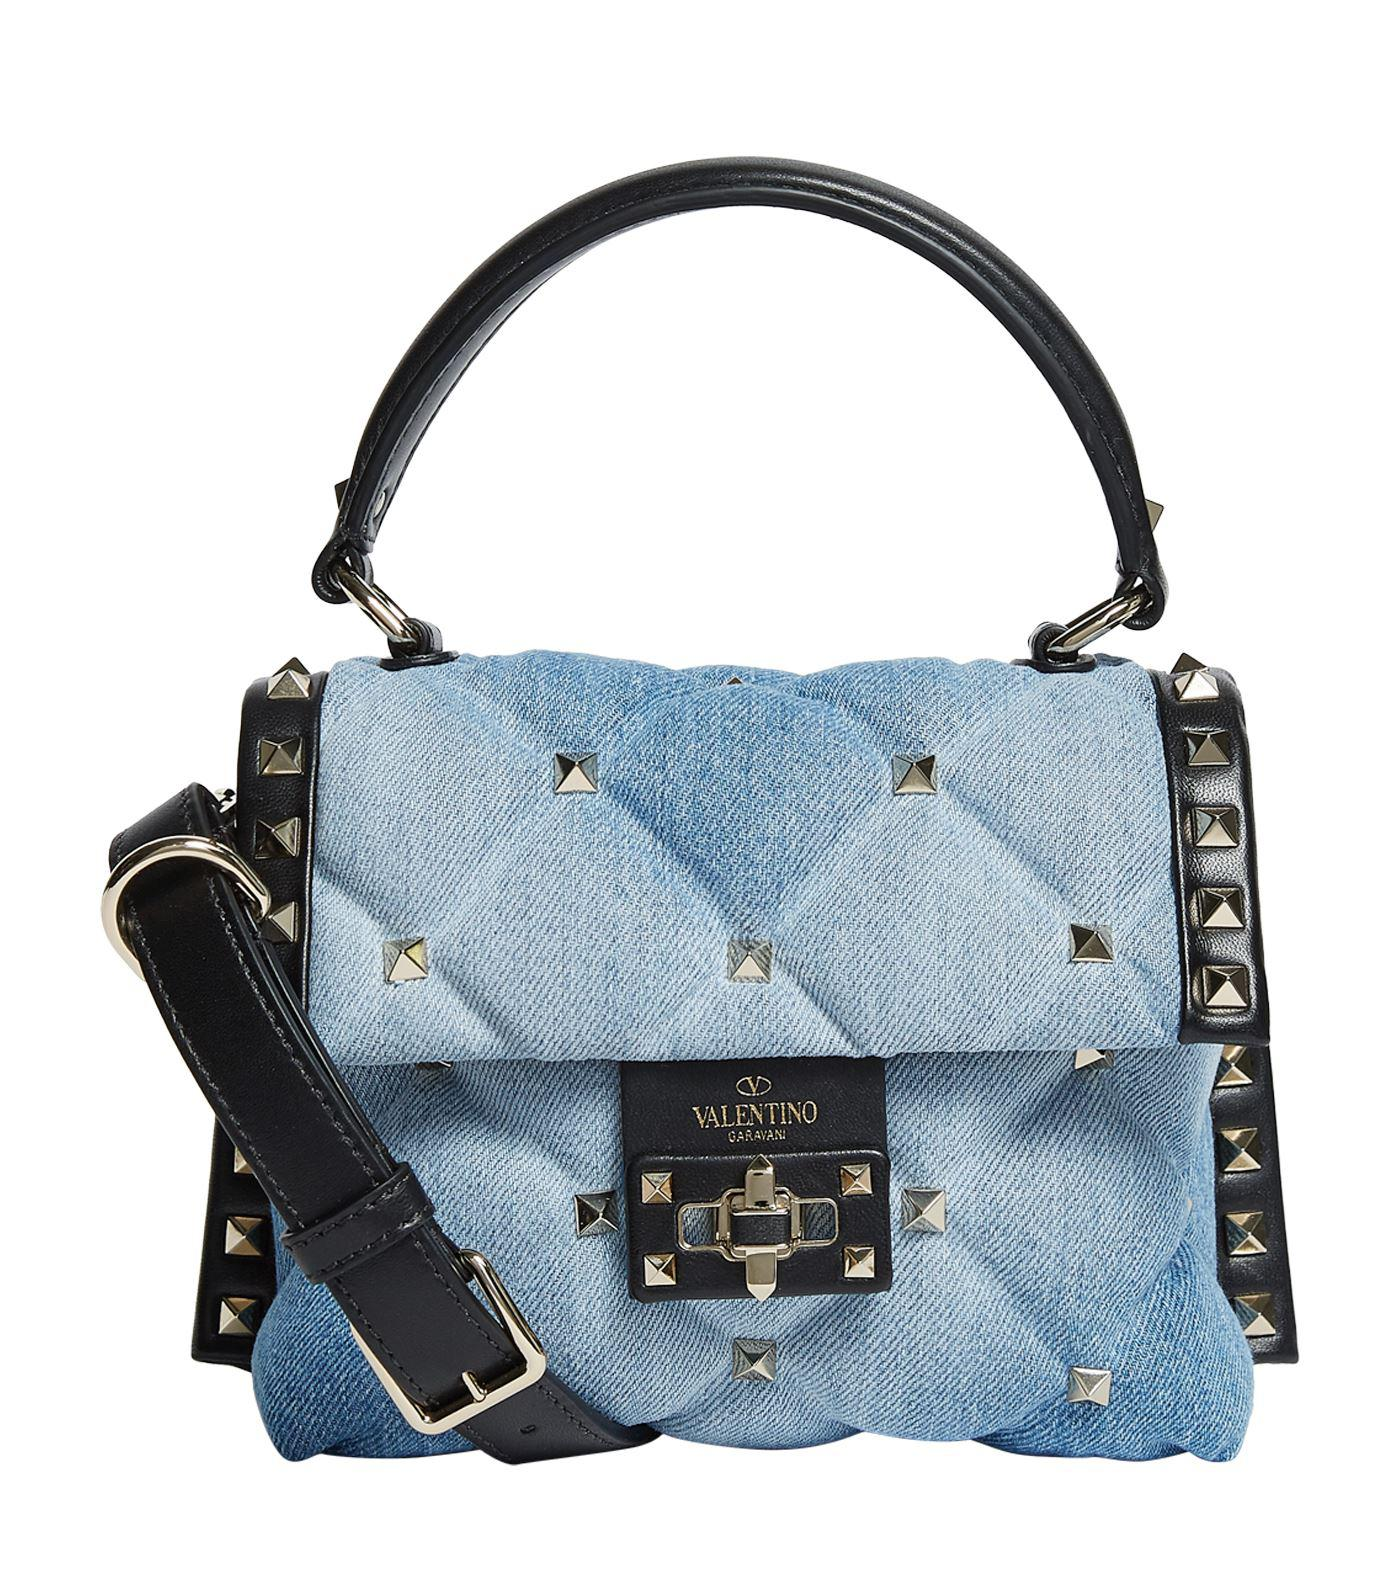 37184a6e1bc Valentino Mini Denim Candystud Top Handle Bag in Black - Lyst